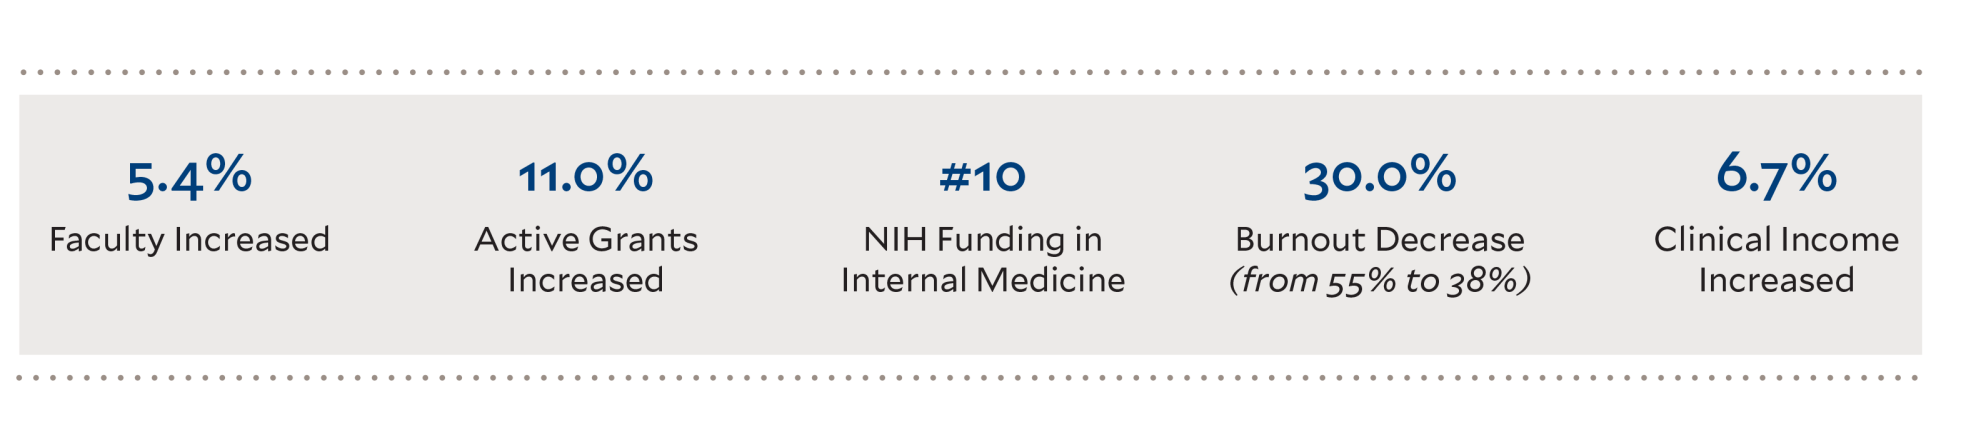 5.4% Faculty Increased, 11% active grants increased; #10 NIH Funding in Internal Medicine, 30% burnout decrease (from 55% to 38%), 6.7 clinical income increased